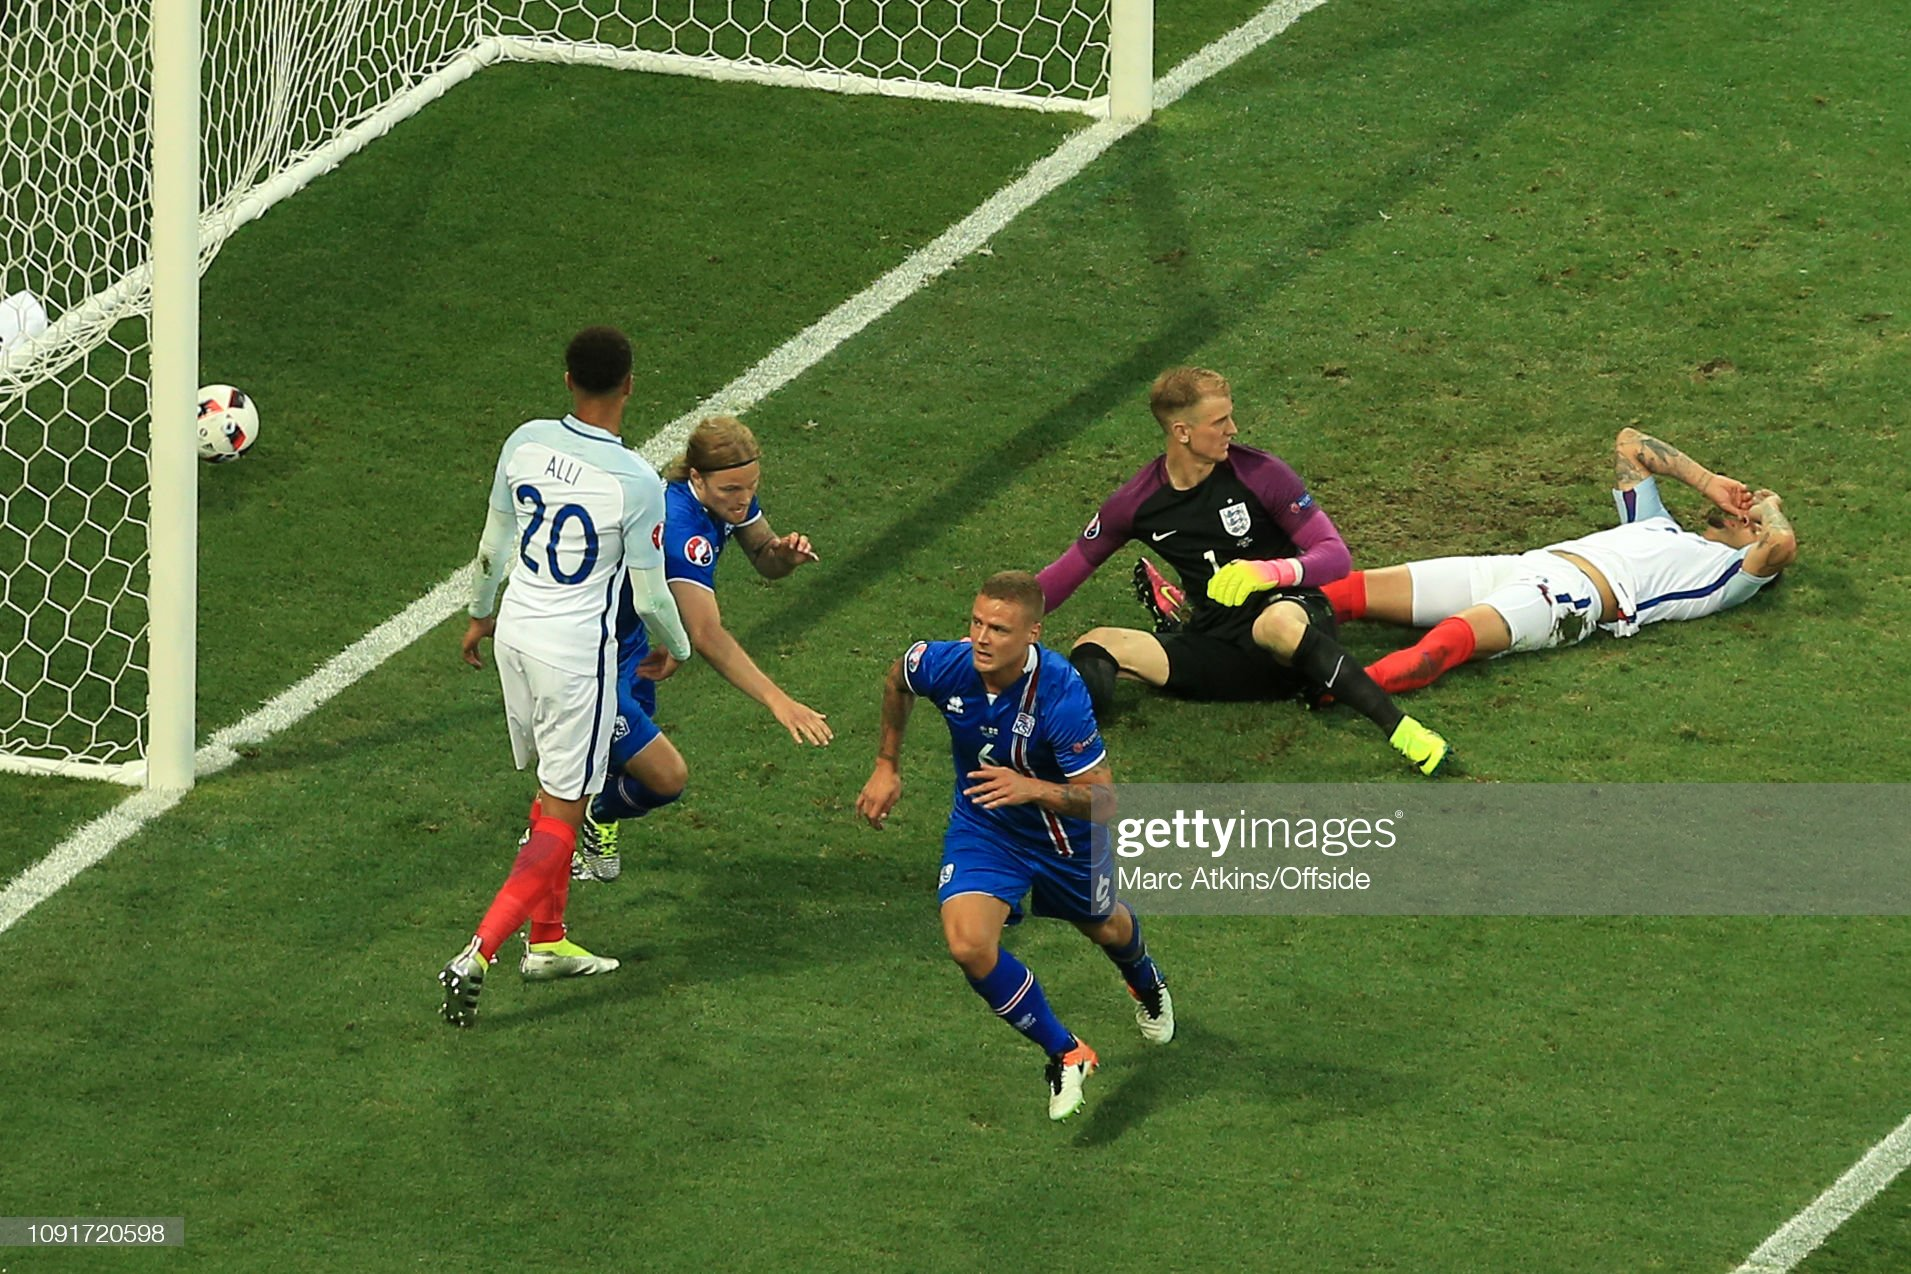 Iceland vs England preview, prediction and odds